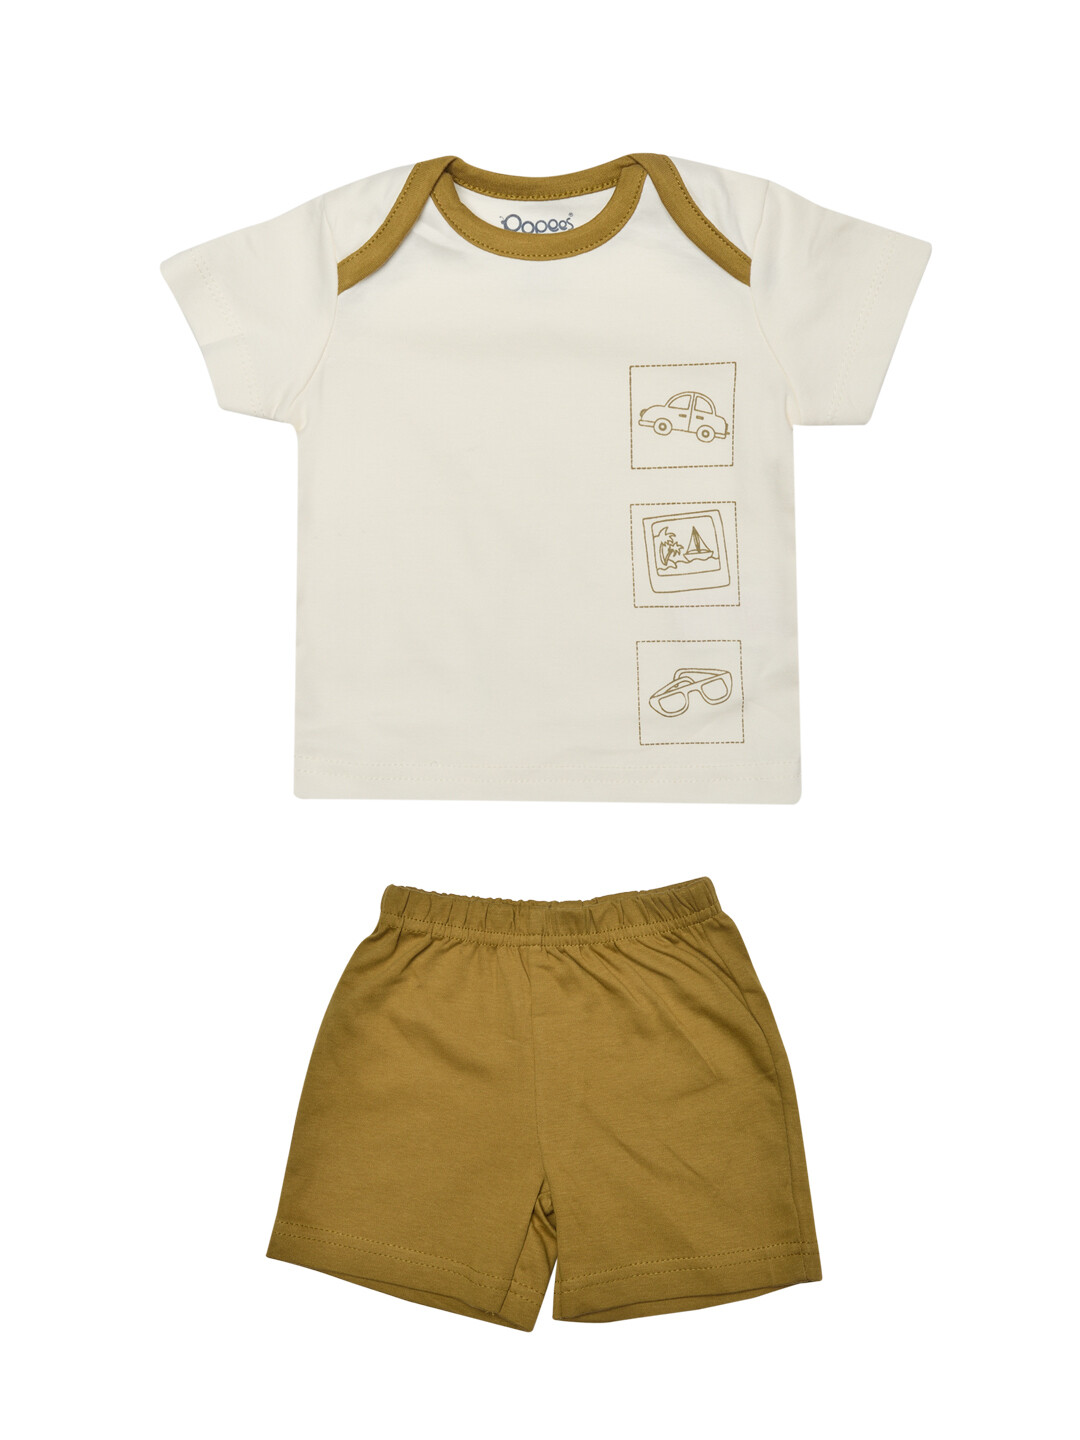 Charun Ivory Half Sleeves Top with Shorts